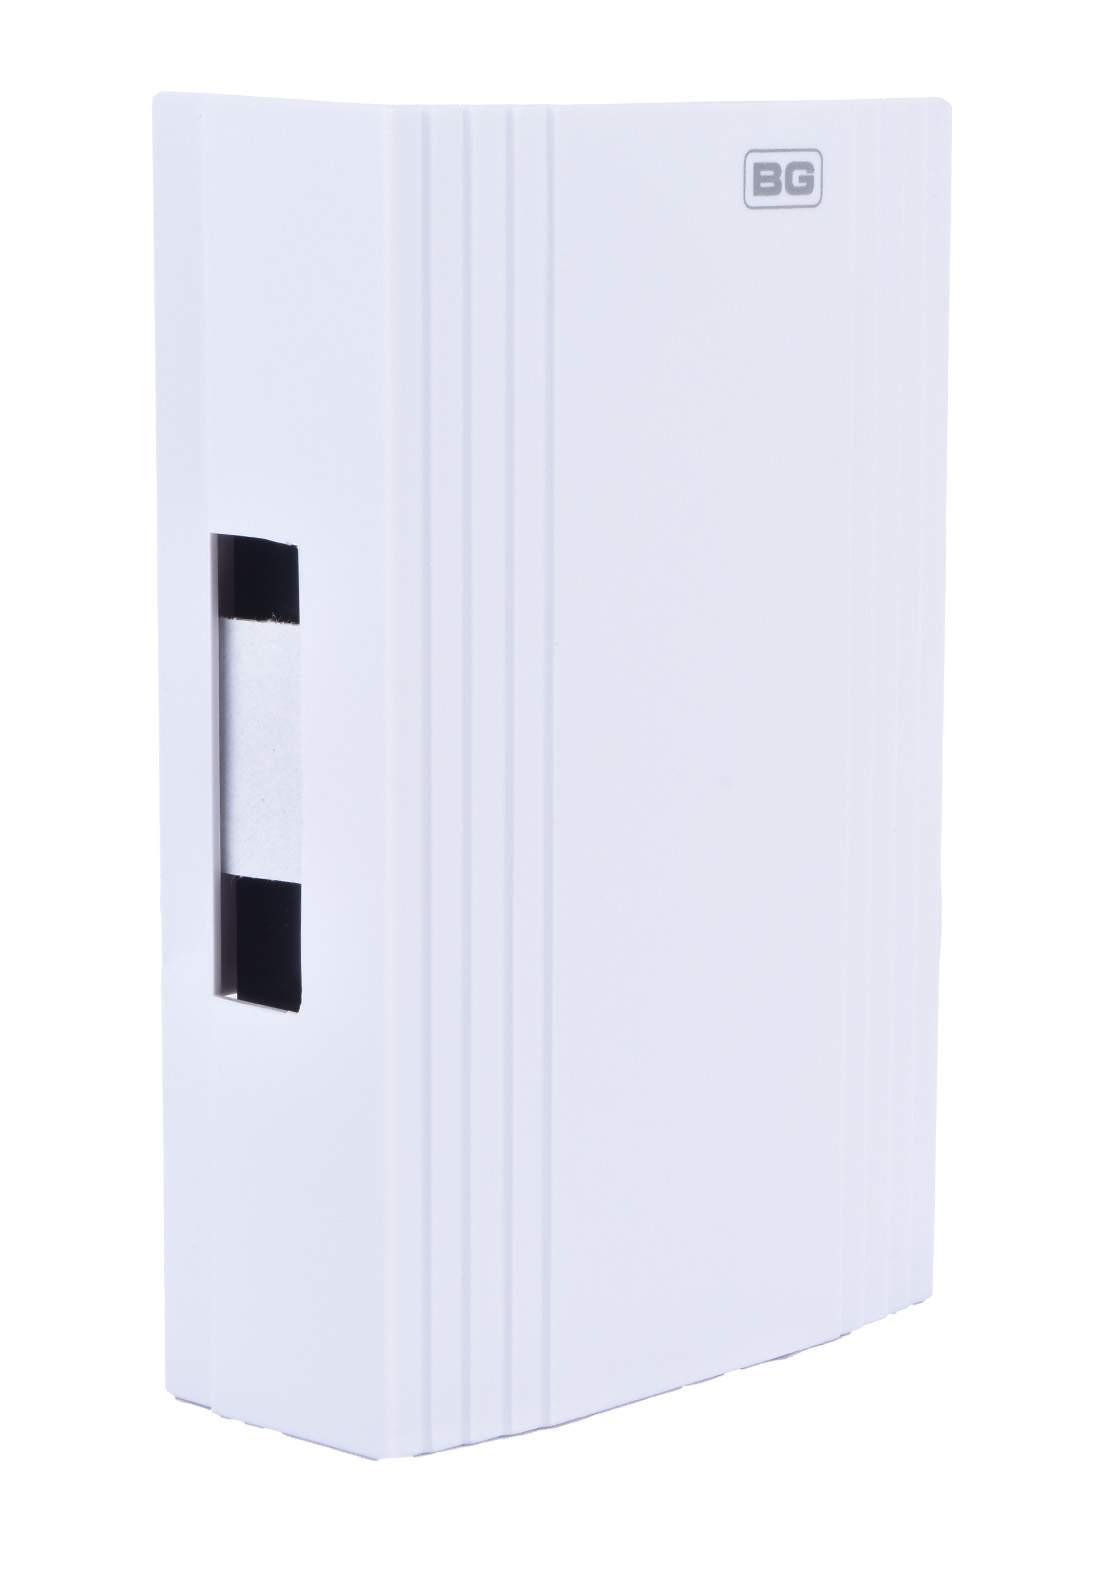 Bg MDC1/NT-01 Ding Dong Door Chime جرس كهربائي